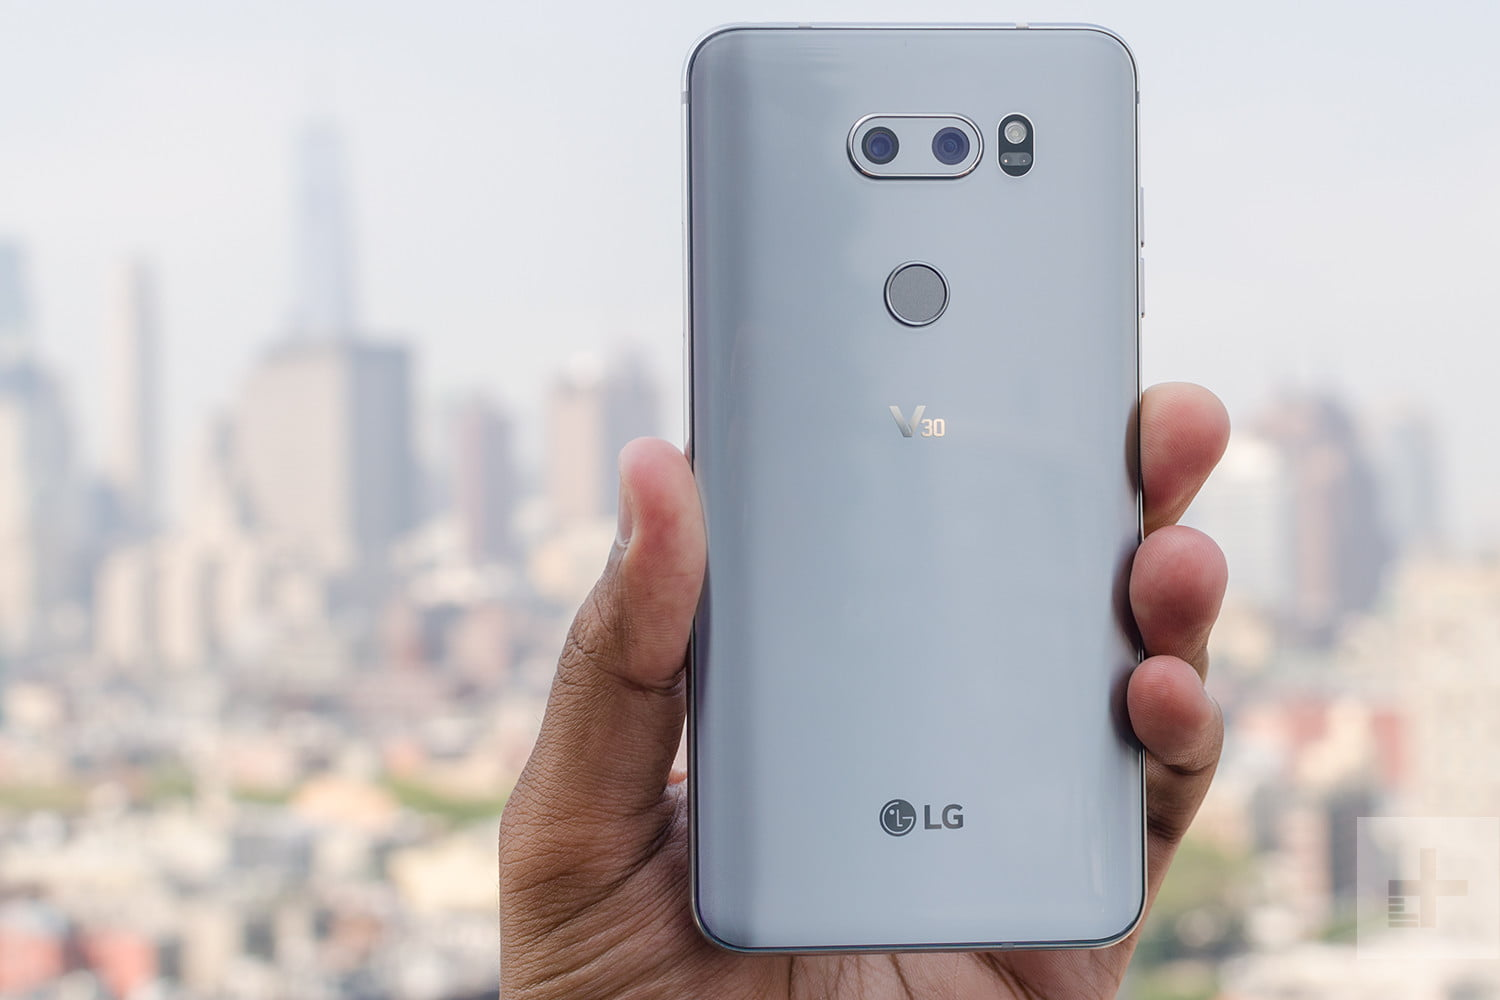 LG rolls back on V30 Android Pie commitment - NotebookCheck